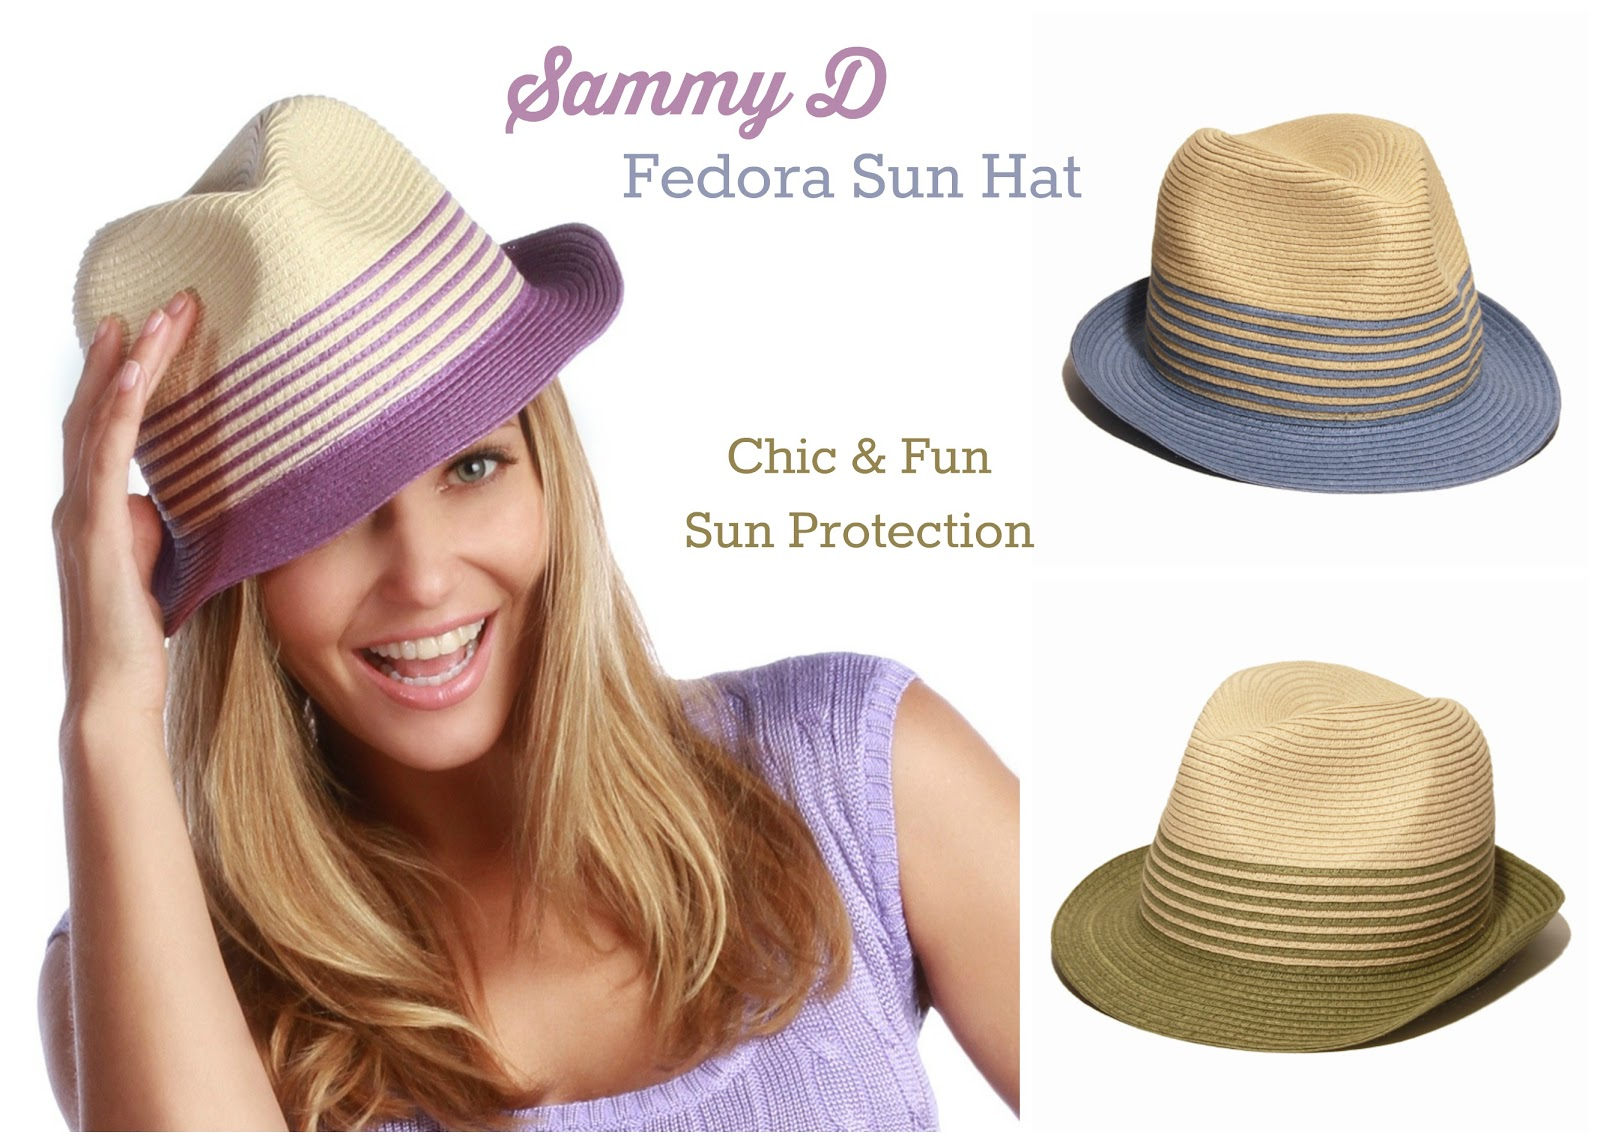 Sammy D Fedora Chic and Fun Sun Protection